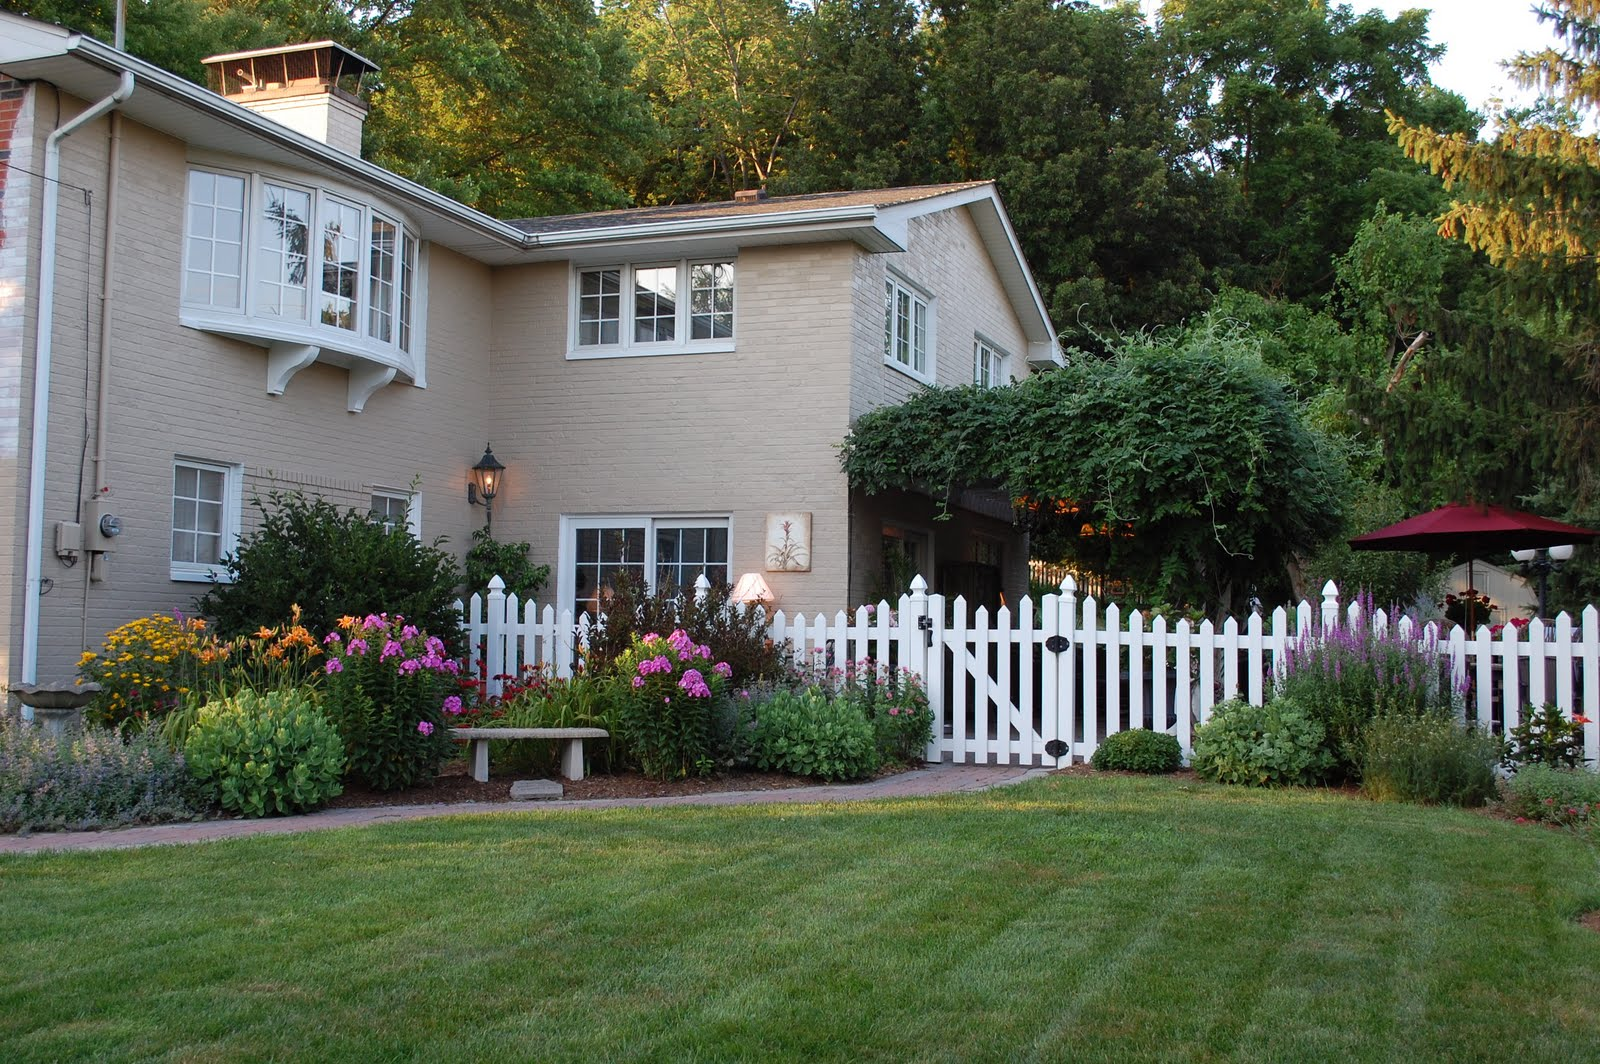 Home Exterior Makeover 28 Images 9 Home Exterior Makeovers Coldwell Banker Insider Look At